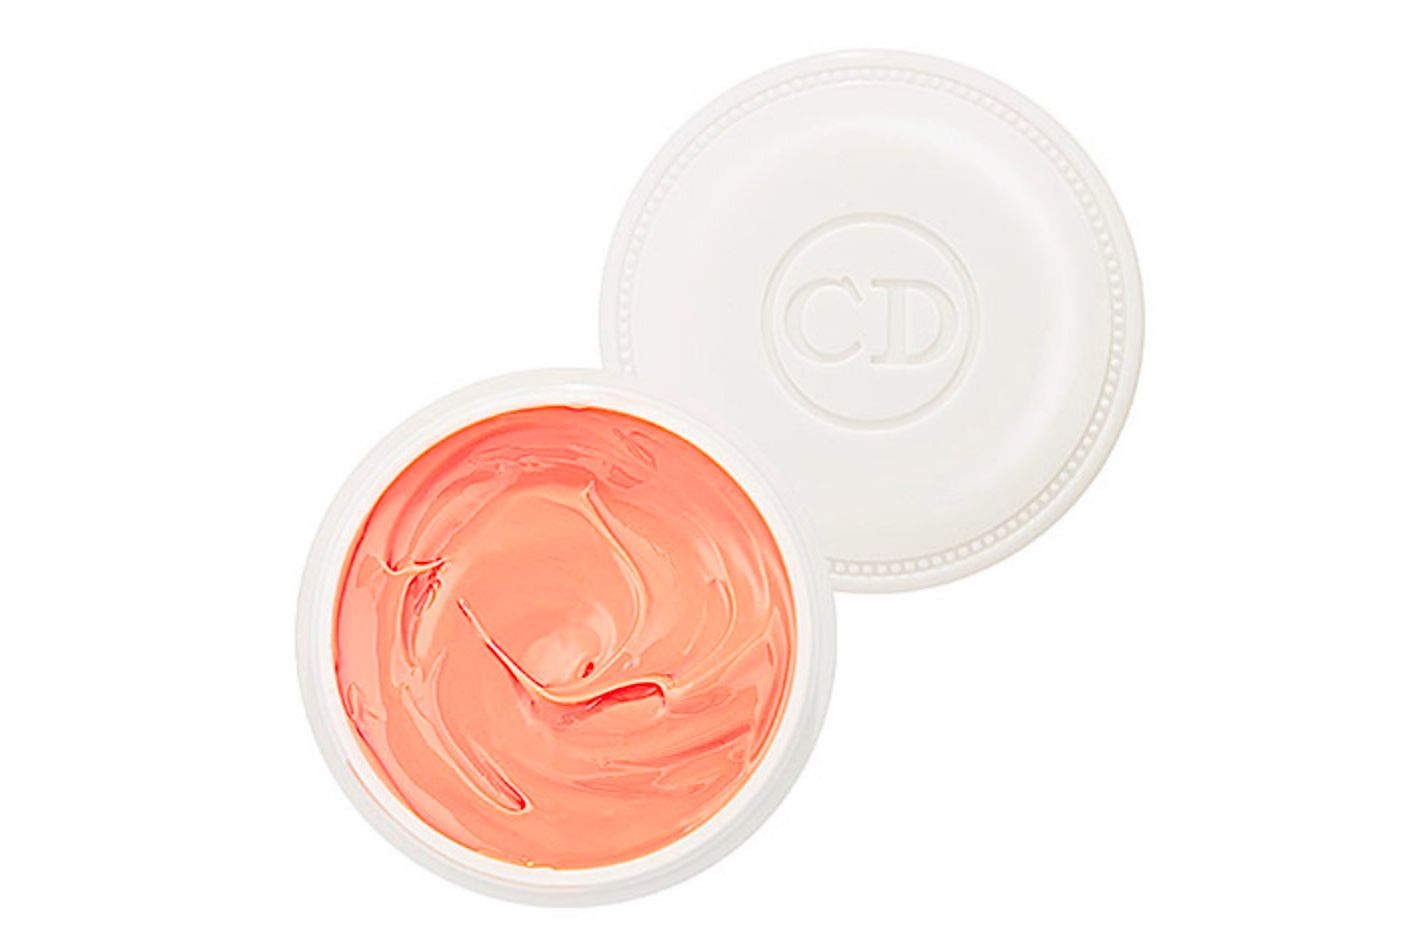 Dior Crème Abricot Fortifying Cream for Nails